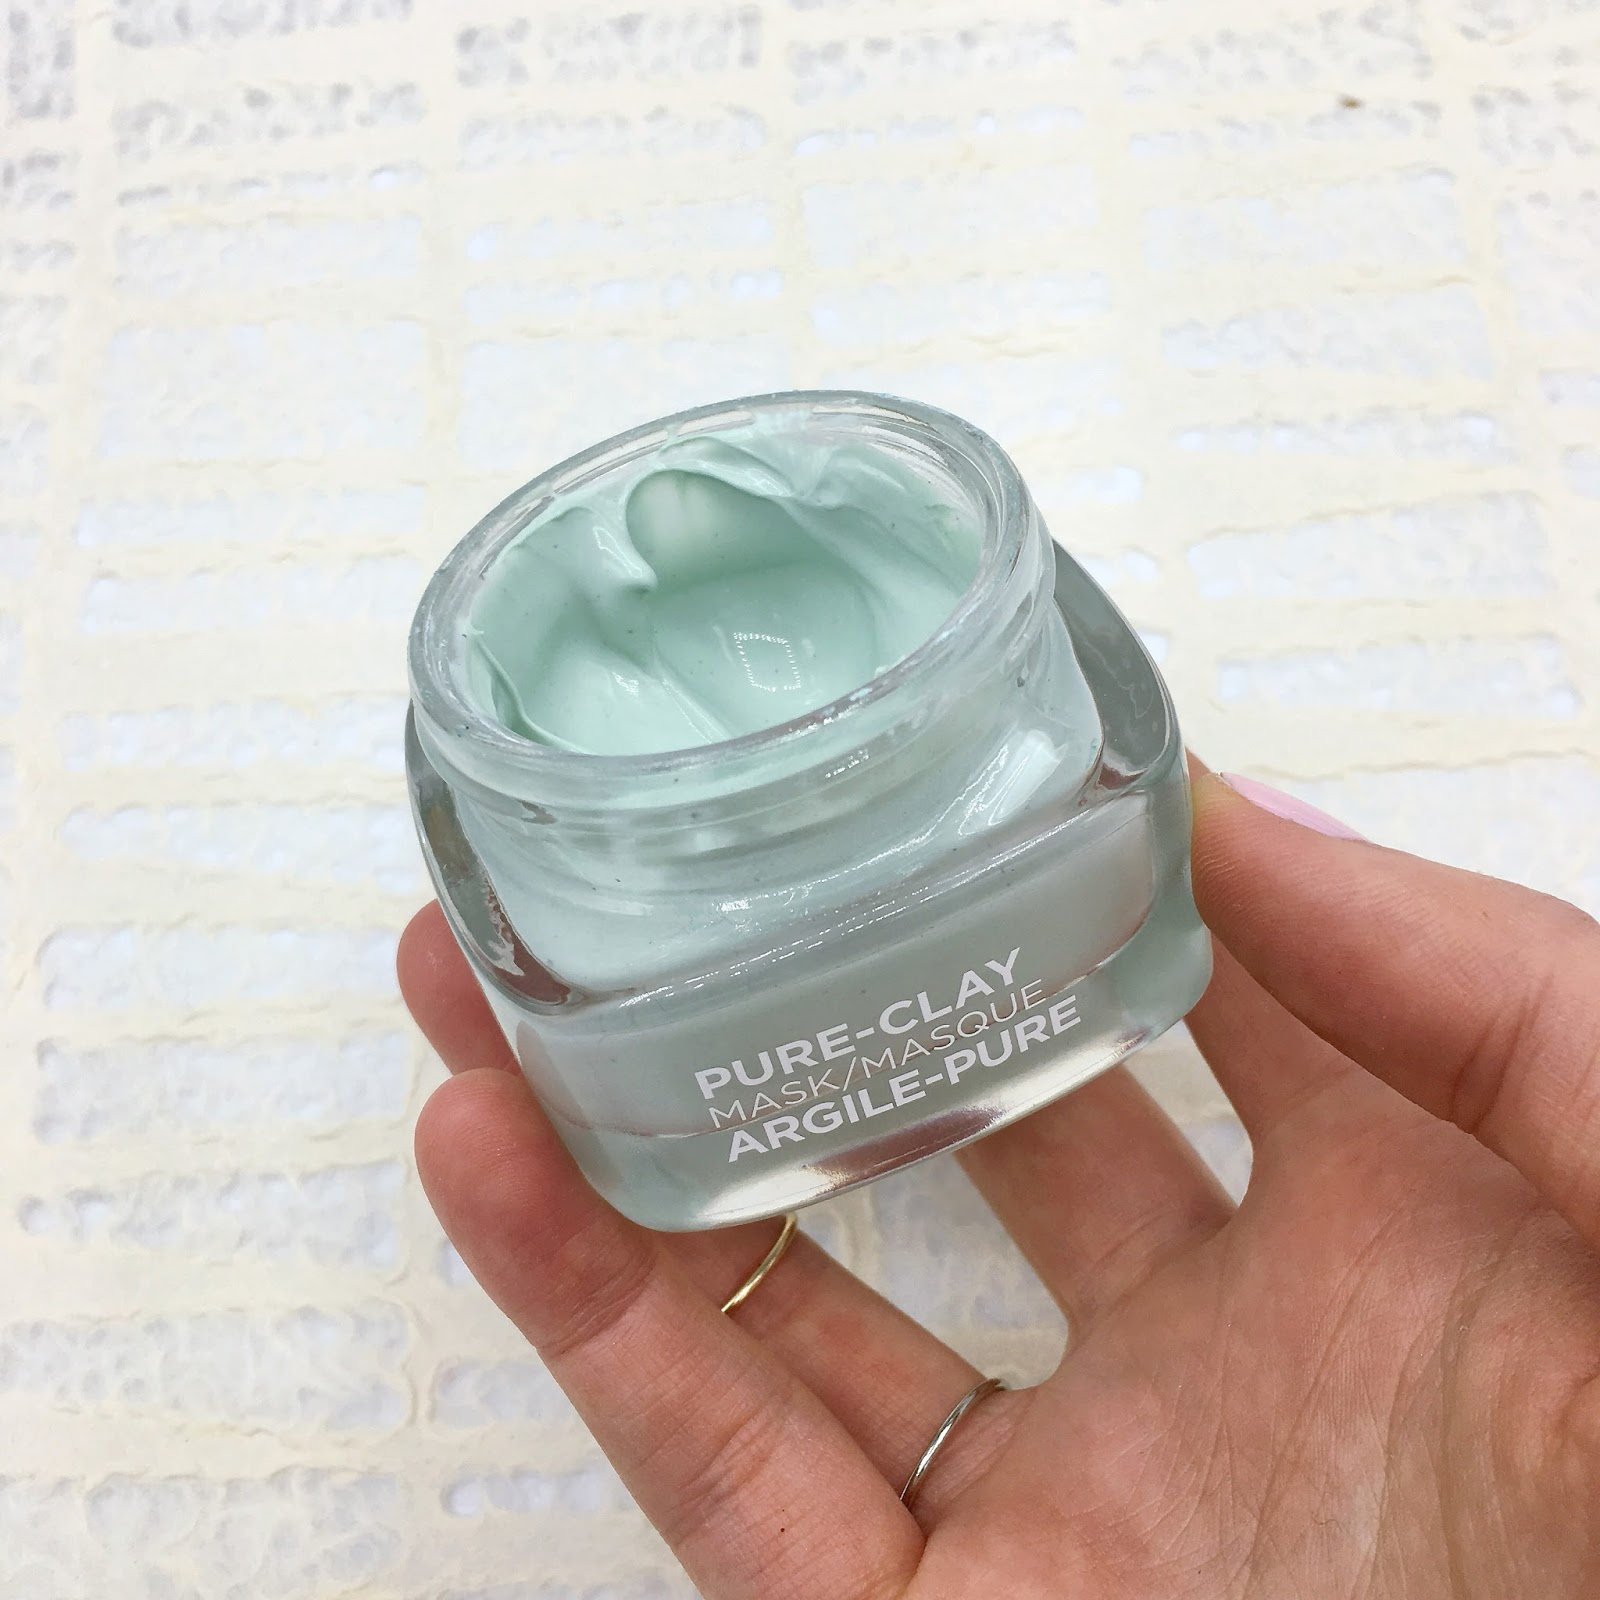 L'oreal Purify & Mattify Pure Clay Mask